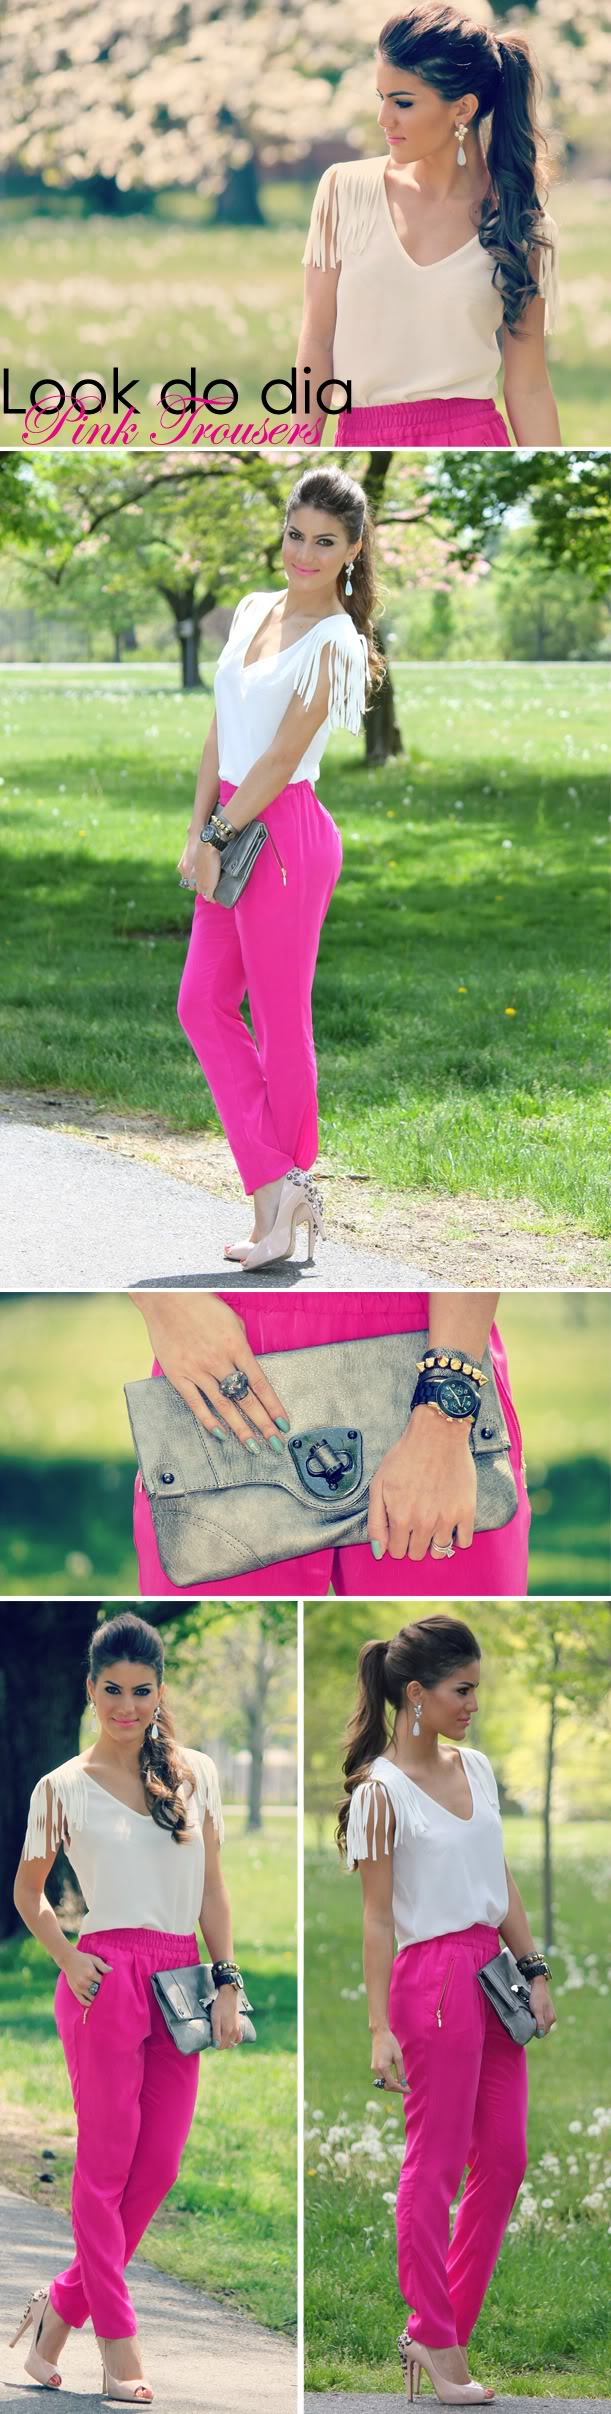 Look do Dia: Pink Trousers